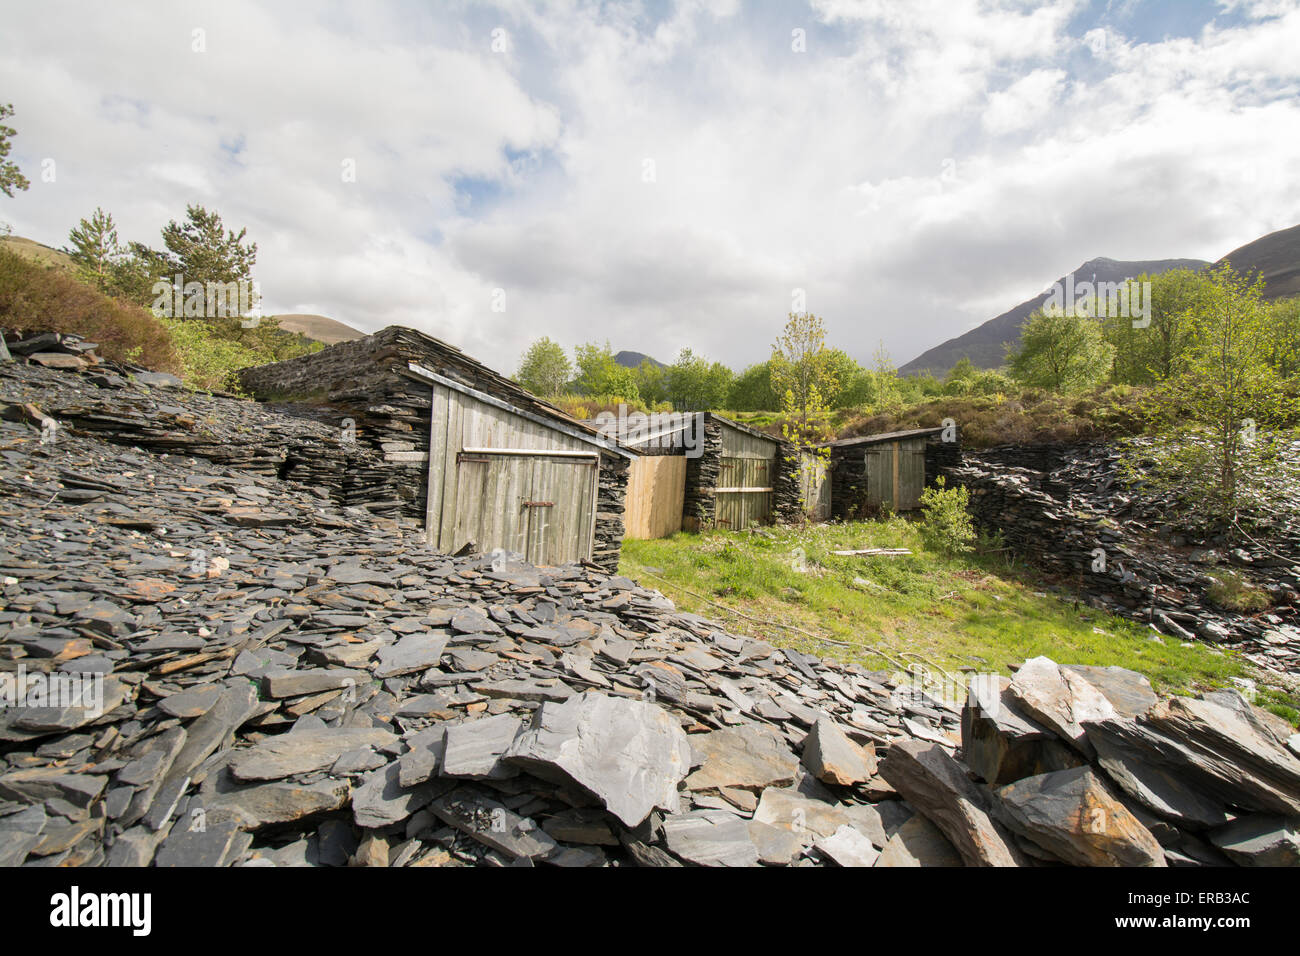 Old slate worker's boatsheds at Ballachulish on the shores of Loch Leven - Stock Image